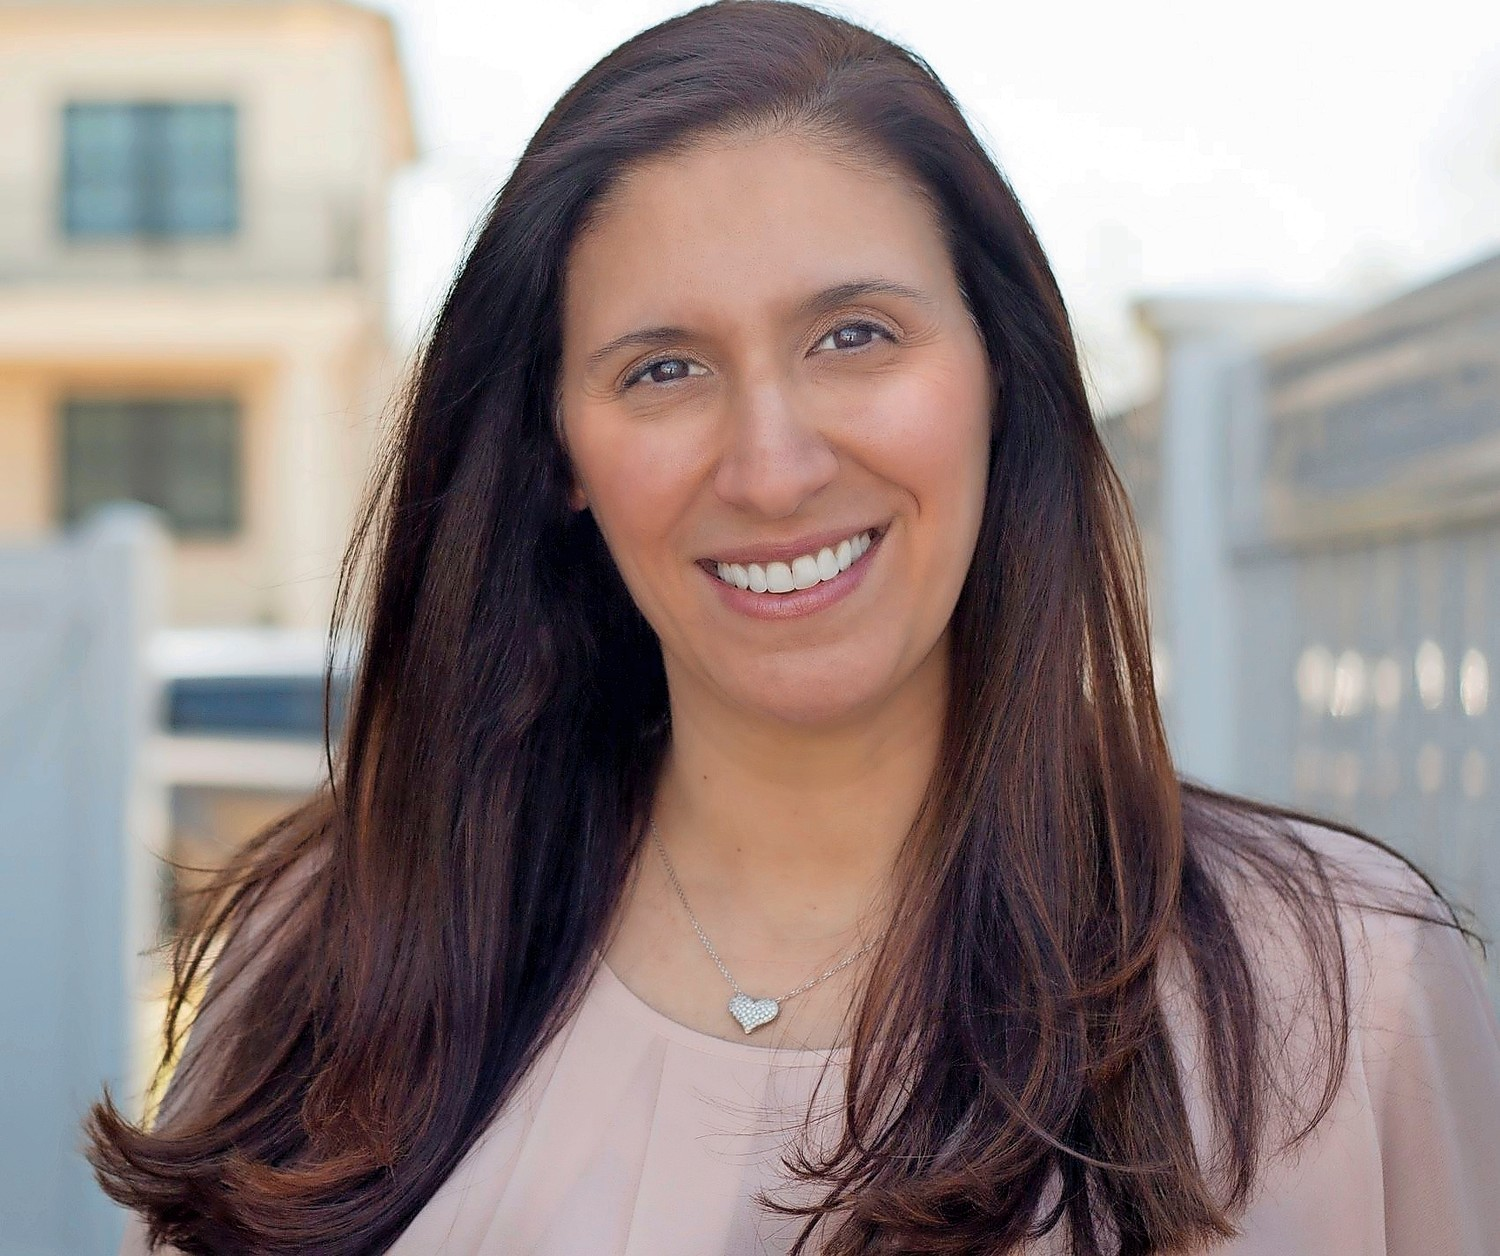 Seaford, meet your newest Seaford School District Board of Education trustee: Andrea Parisi.